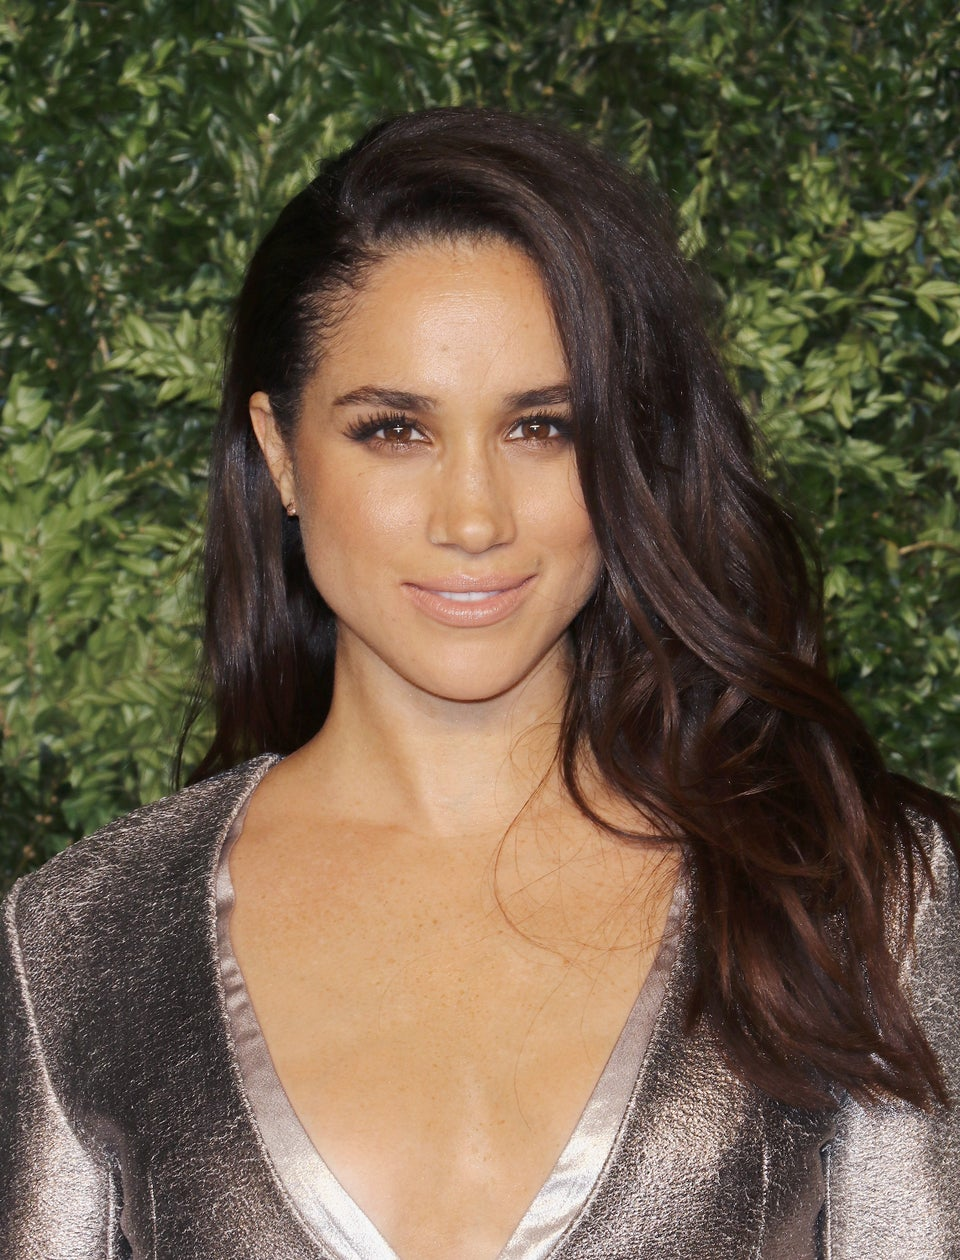 Will Meghan Markle Wedding Hair Be Natural Curly